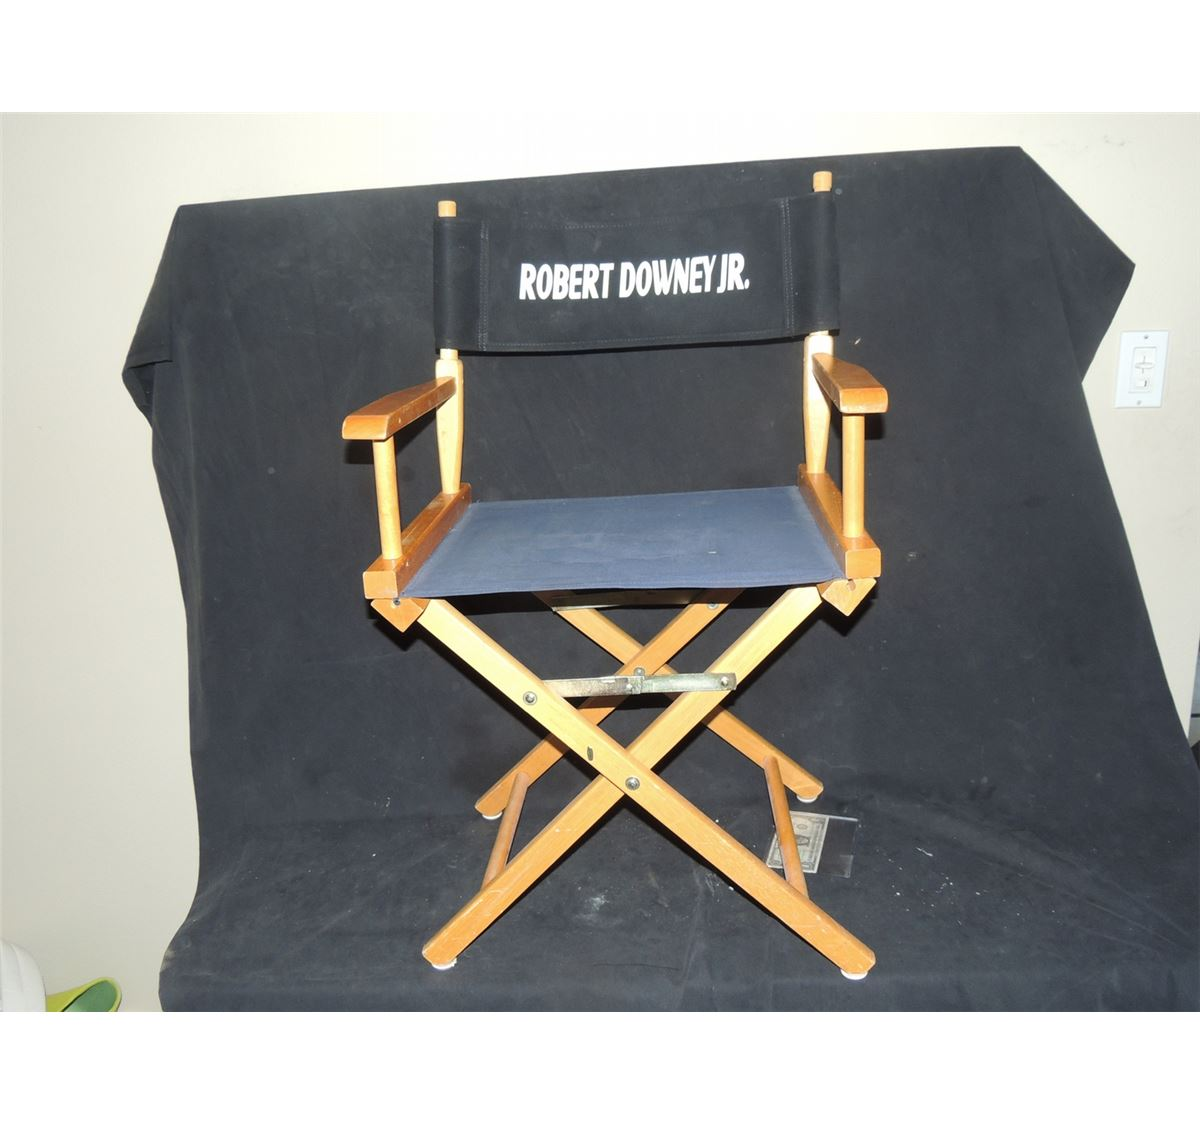 sc 1 st  iCollector.com & AVENGERS THE IRON MAN ROBERT DOWNEY JR DIRECTOR CHAIR USED ON SET